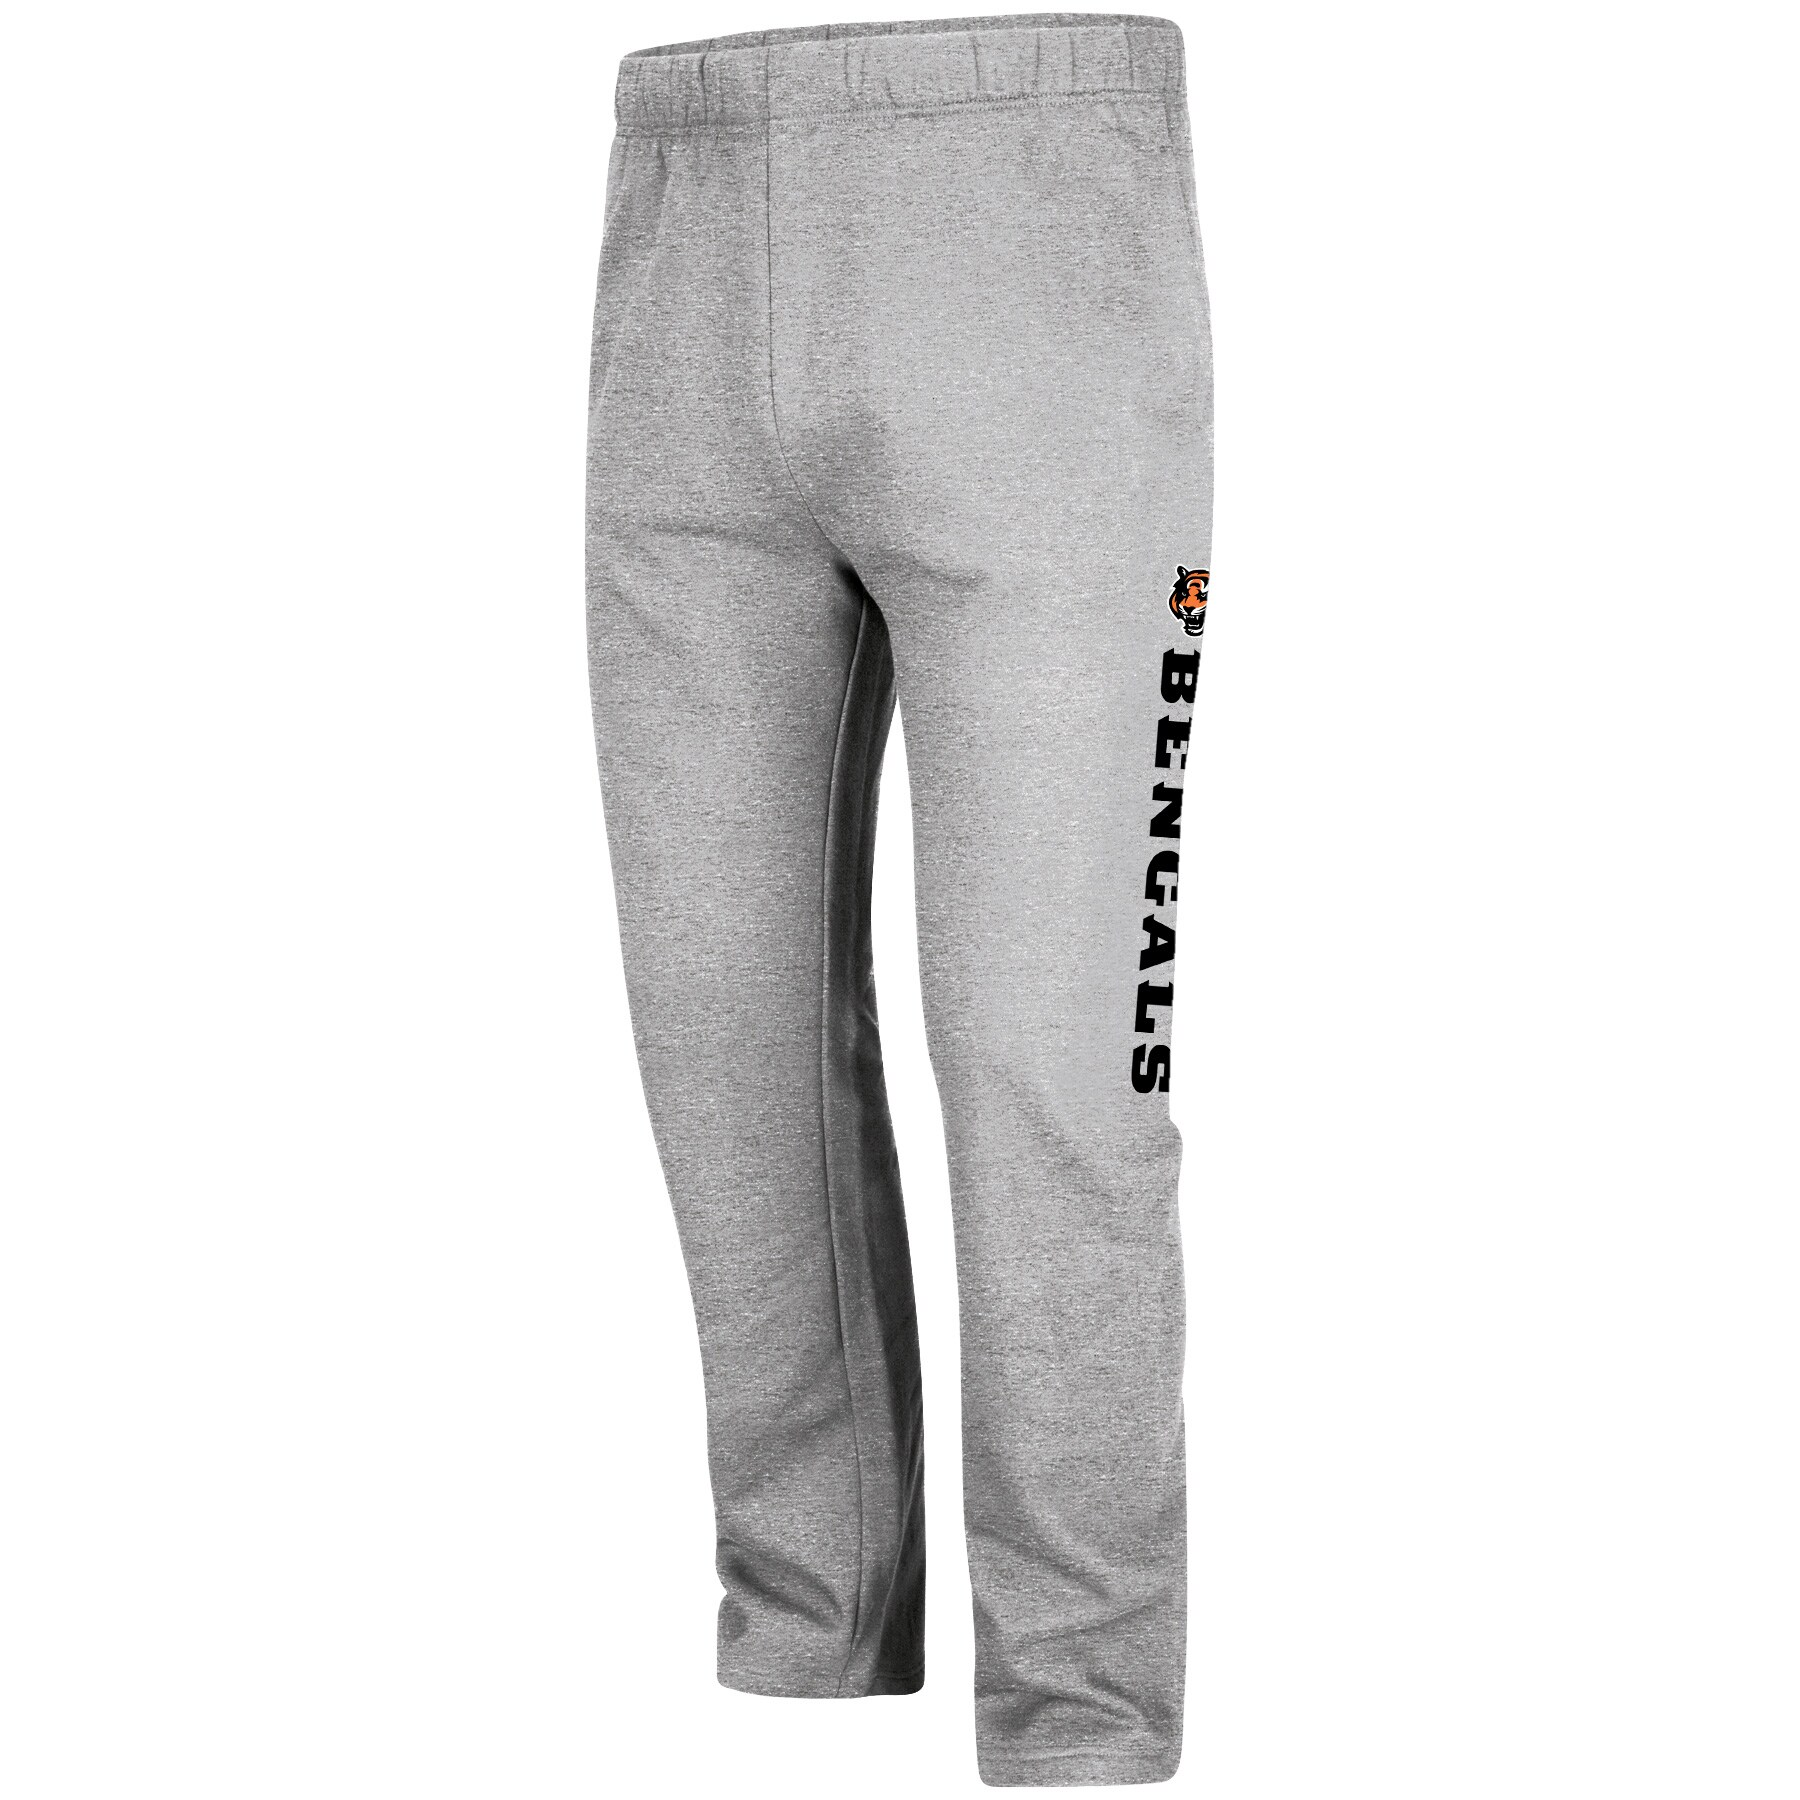 Cincinnati Bengals Majestic Big & Tall Critical Victory Pants - Heathered Gray